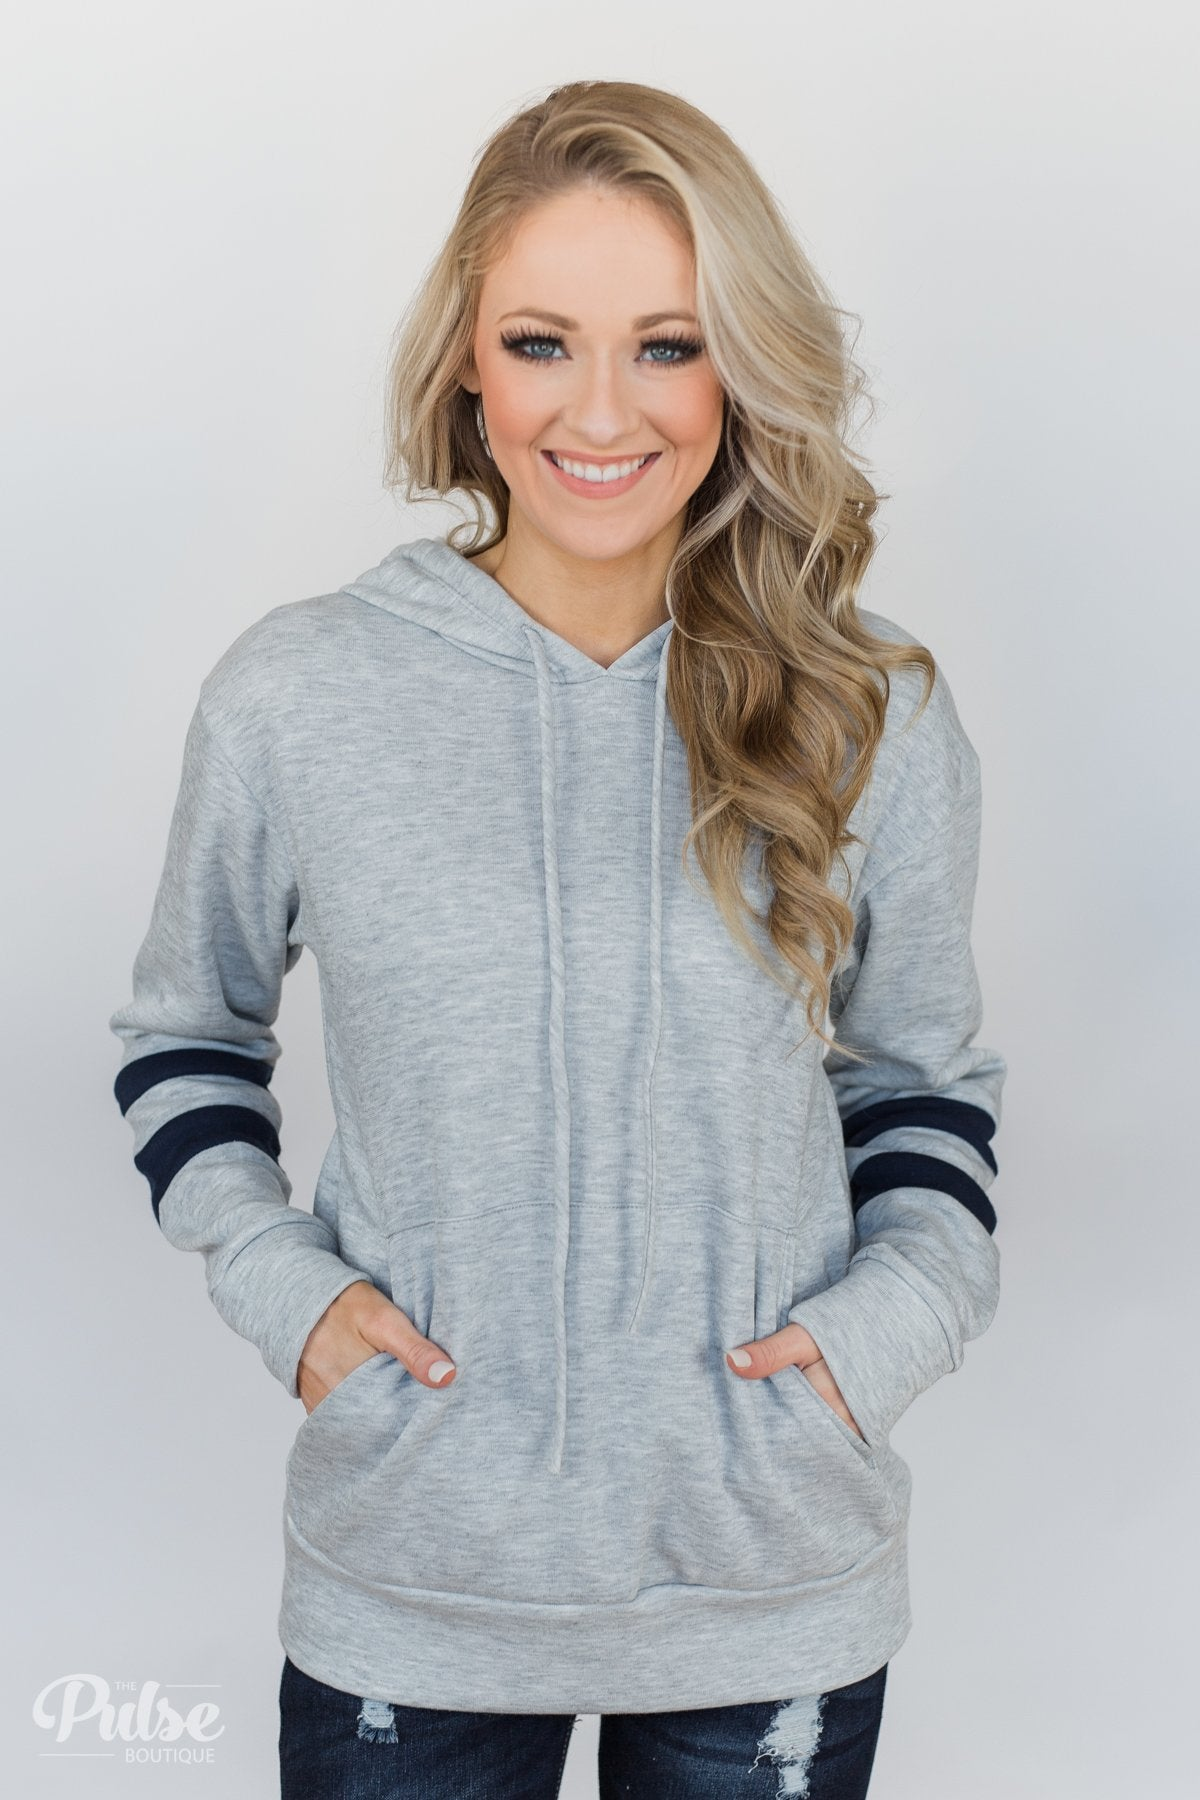 Feels Like Home Soft Hoodie- Heather Grey & Navy